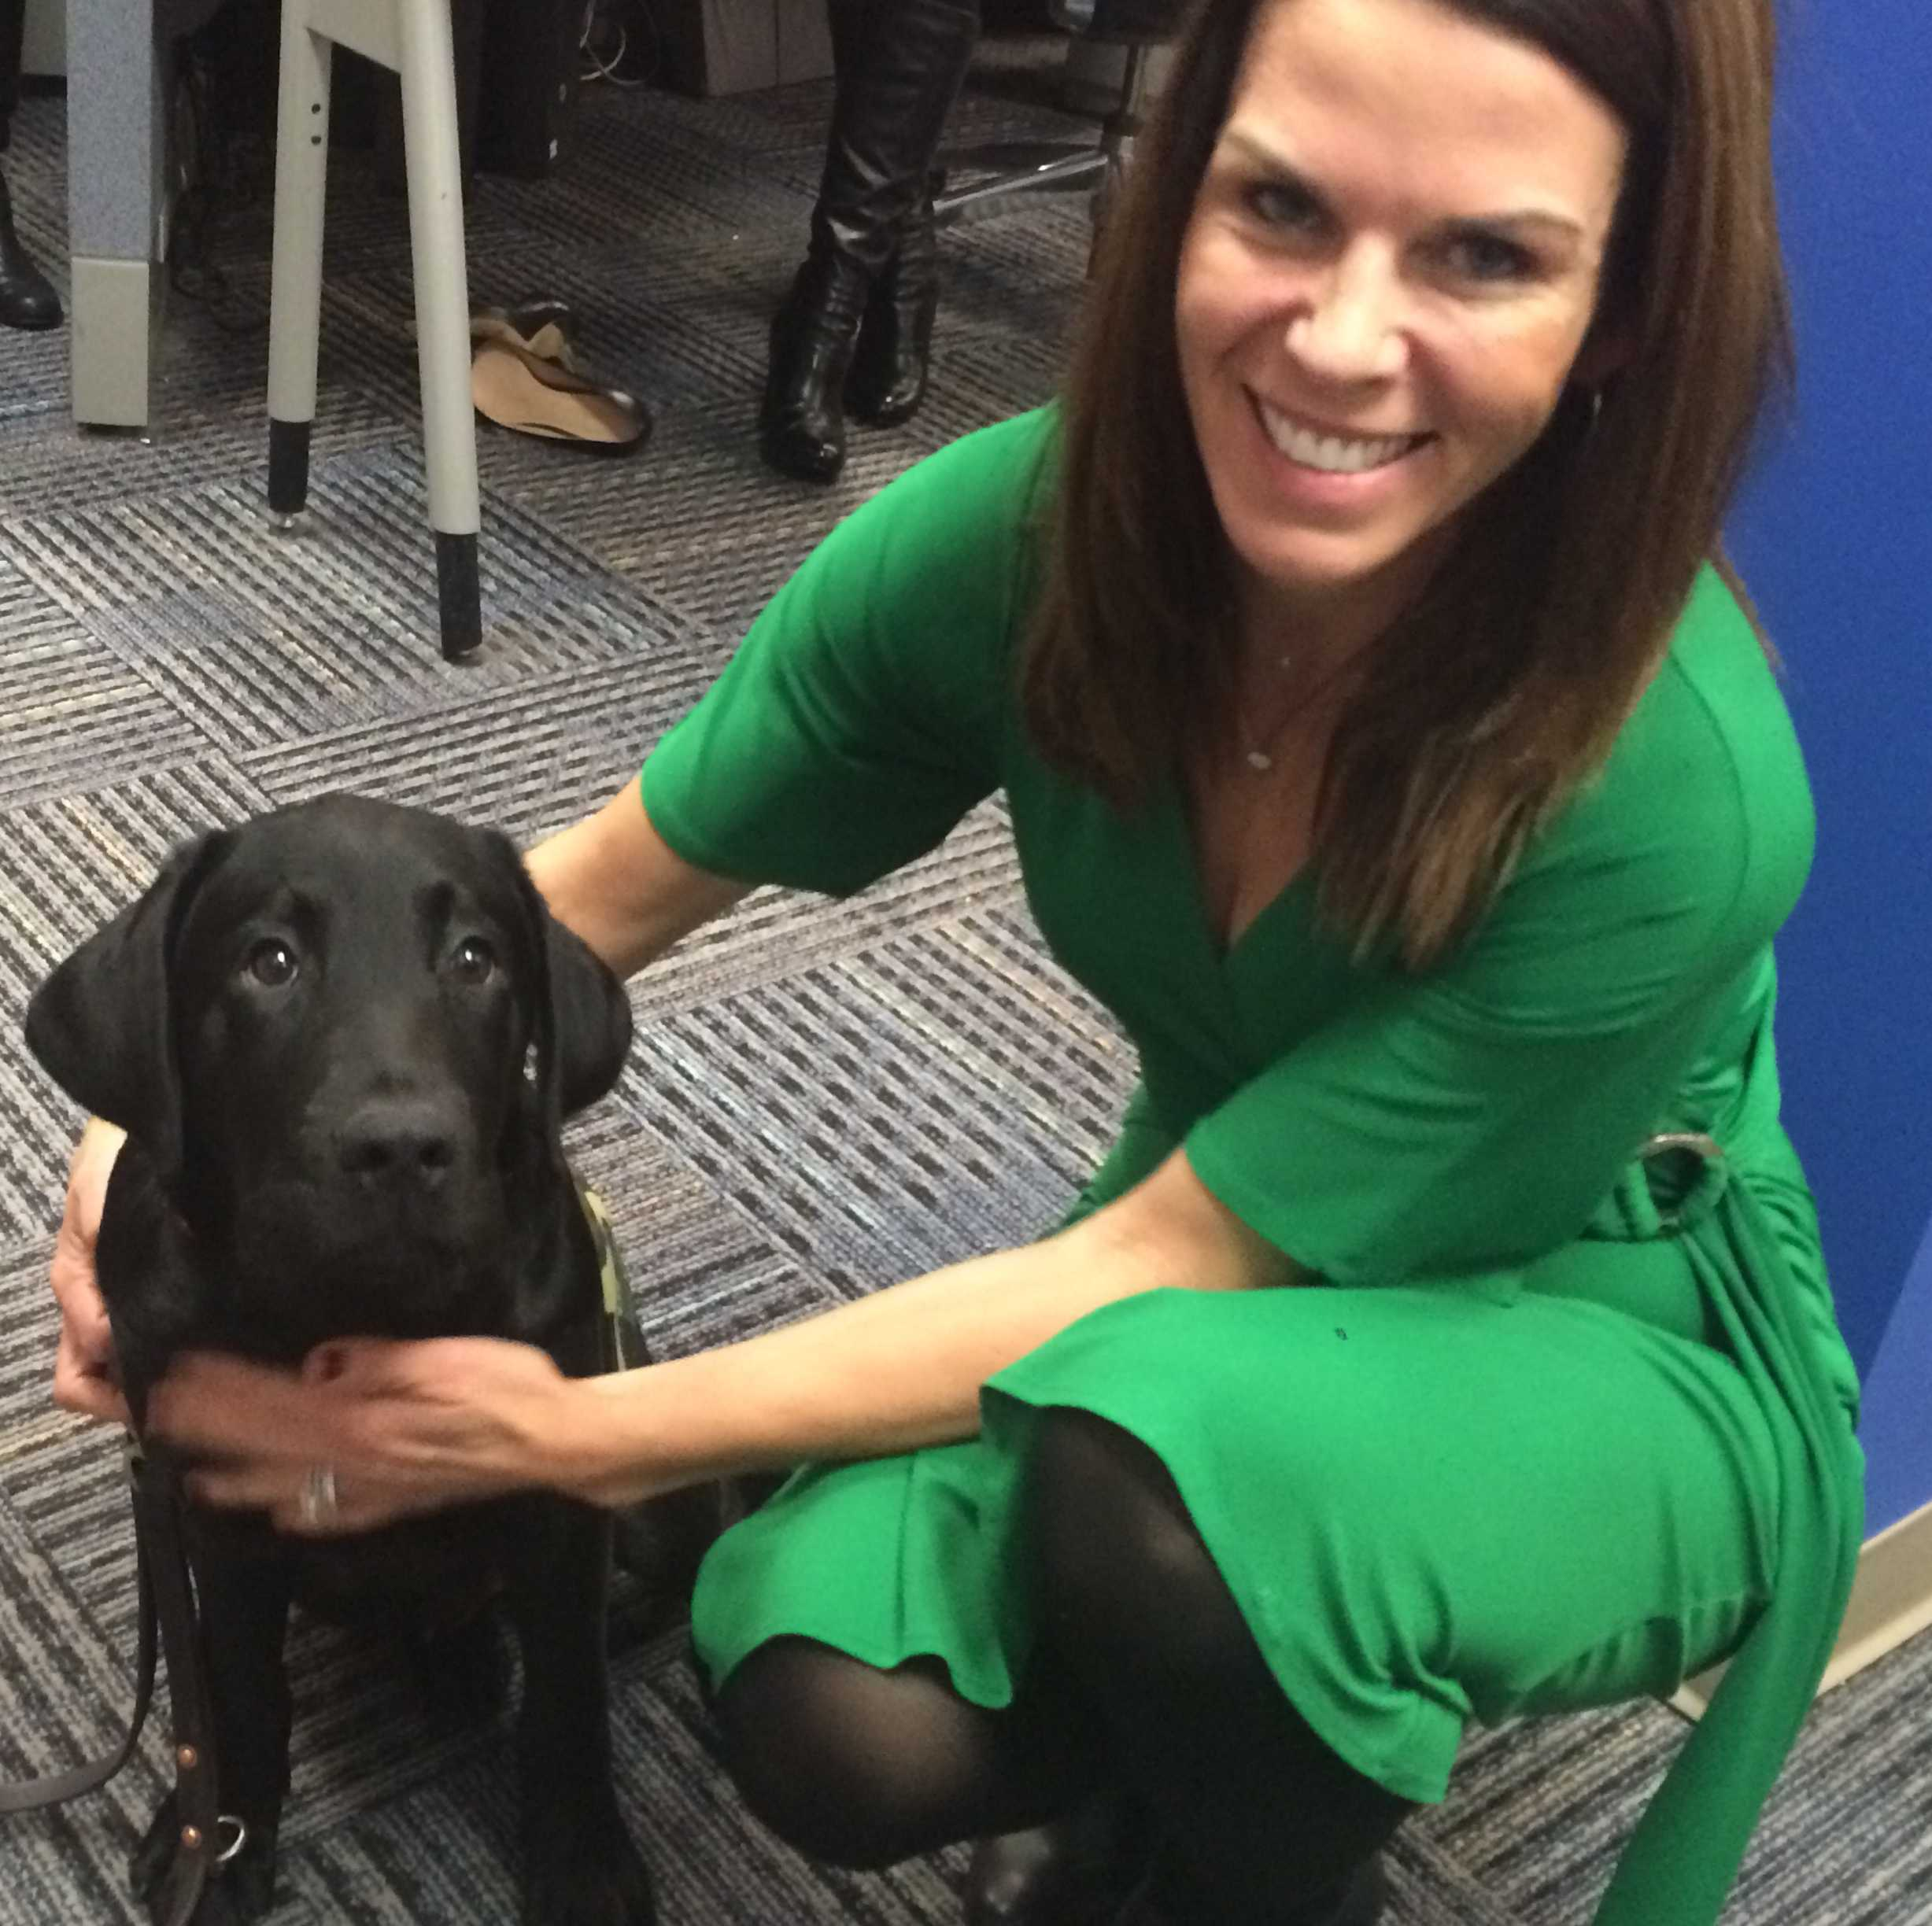 Charlie, a service dog in training with America's VetDogs, is greeted by 11 News reporter Megan Pringle.